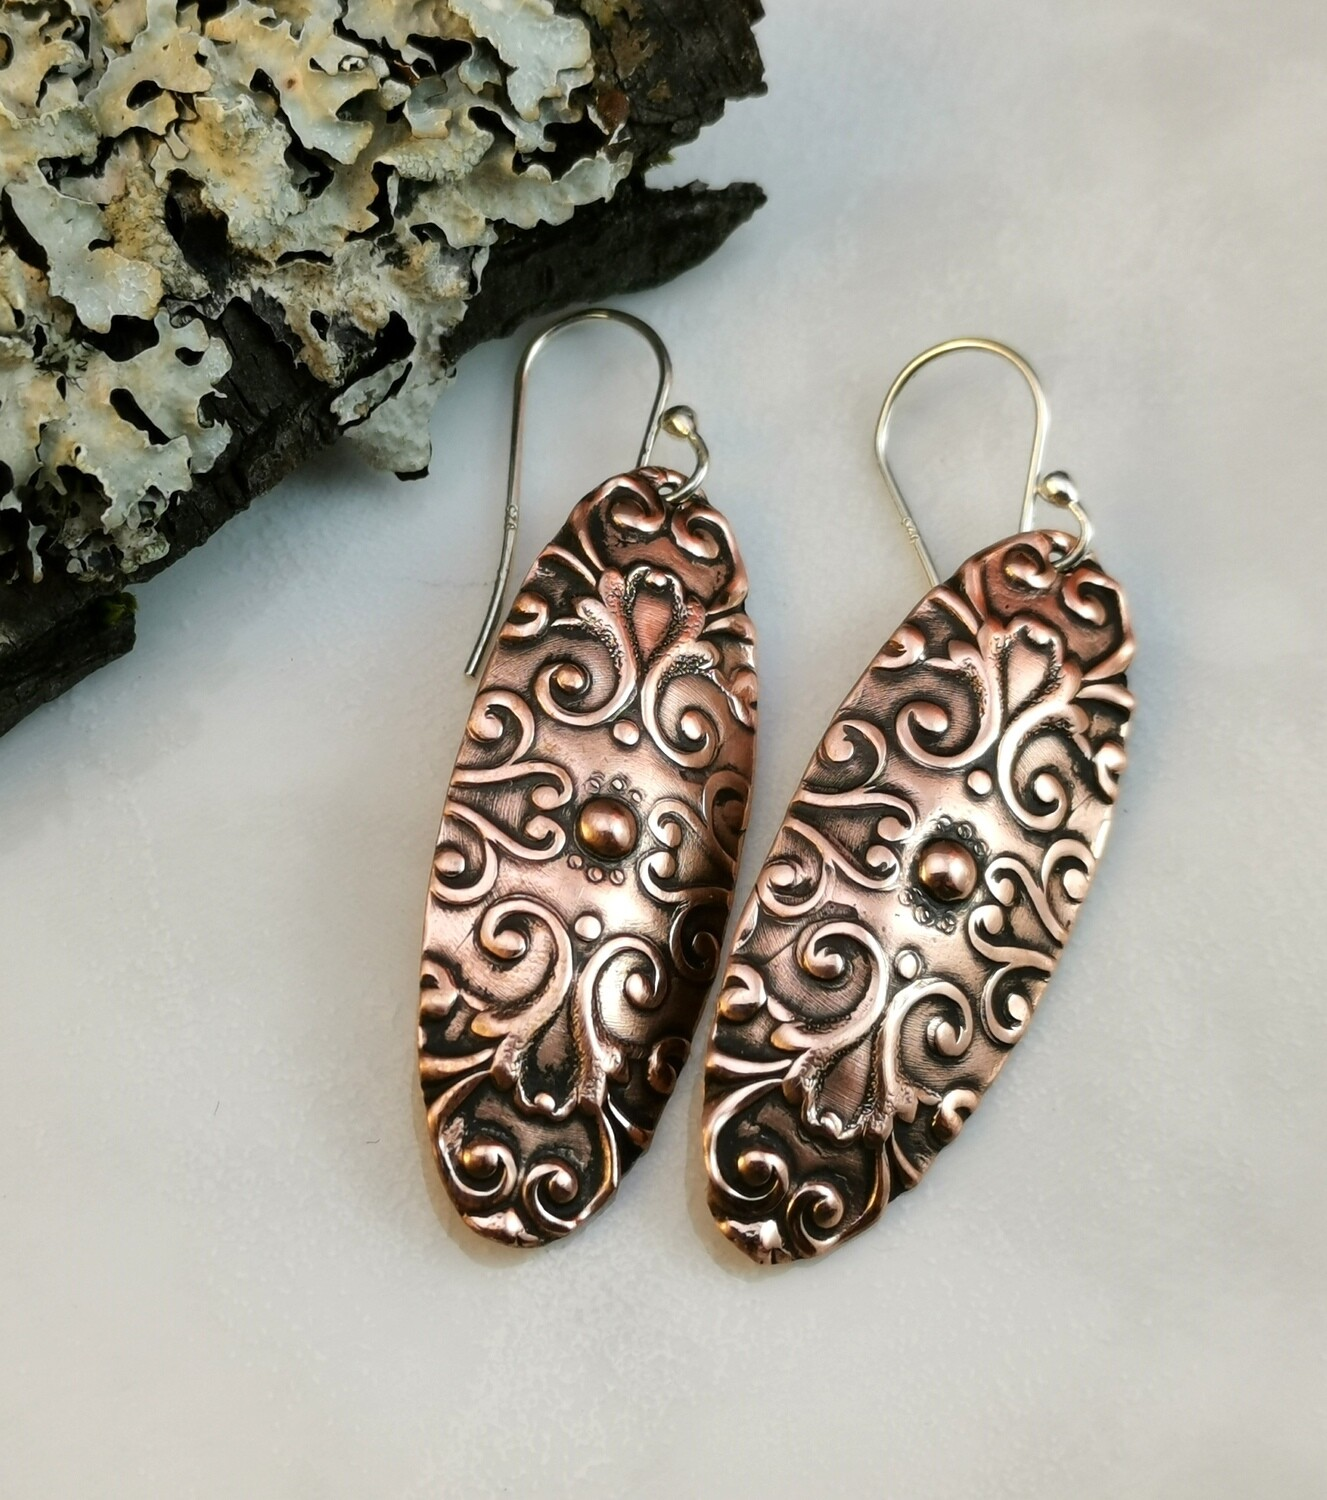 Scroll Patterned Textured Copper Oval Earrings